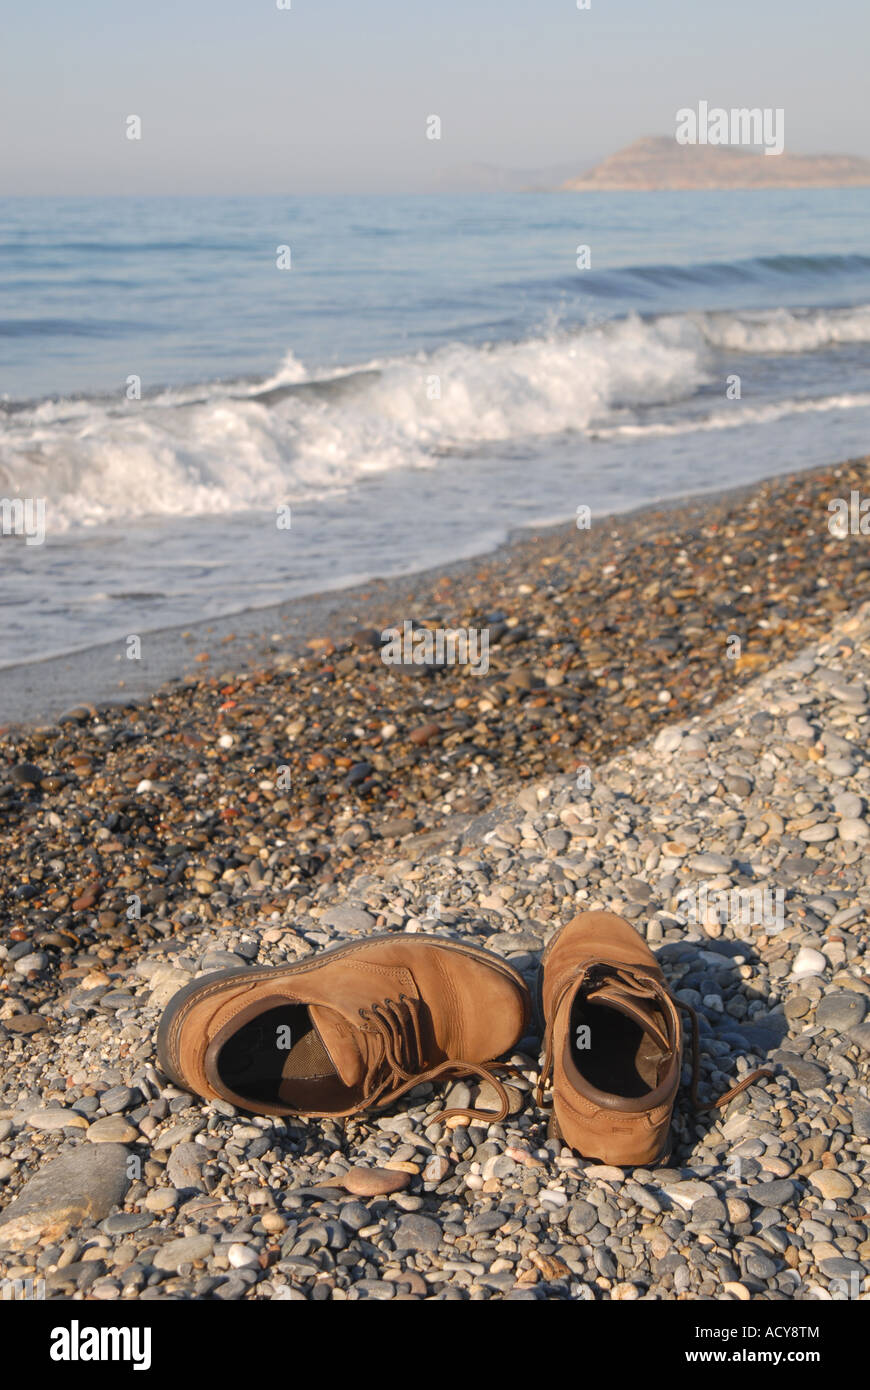 025bf5f38c26 CRETE Shoes on the beach at Maleme near Hania Stock Photo  13252579 ...